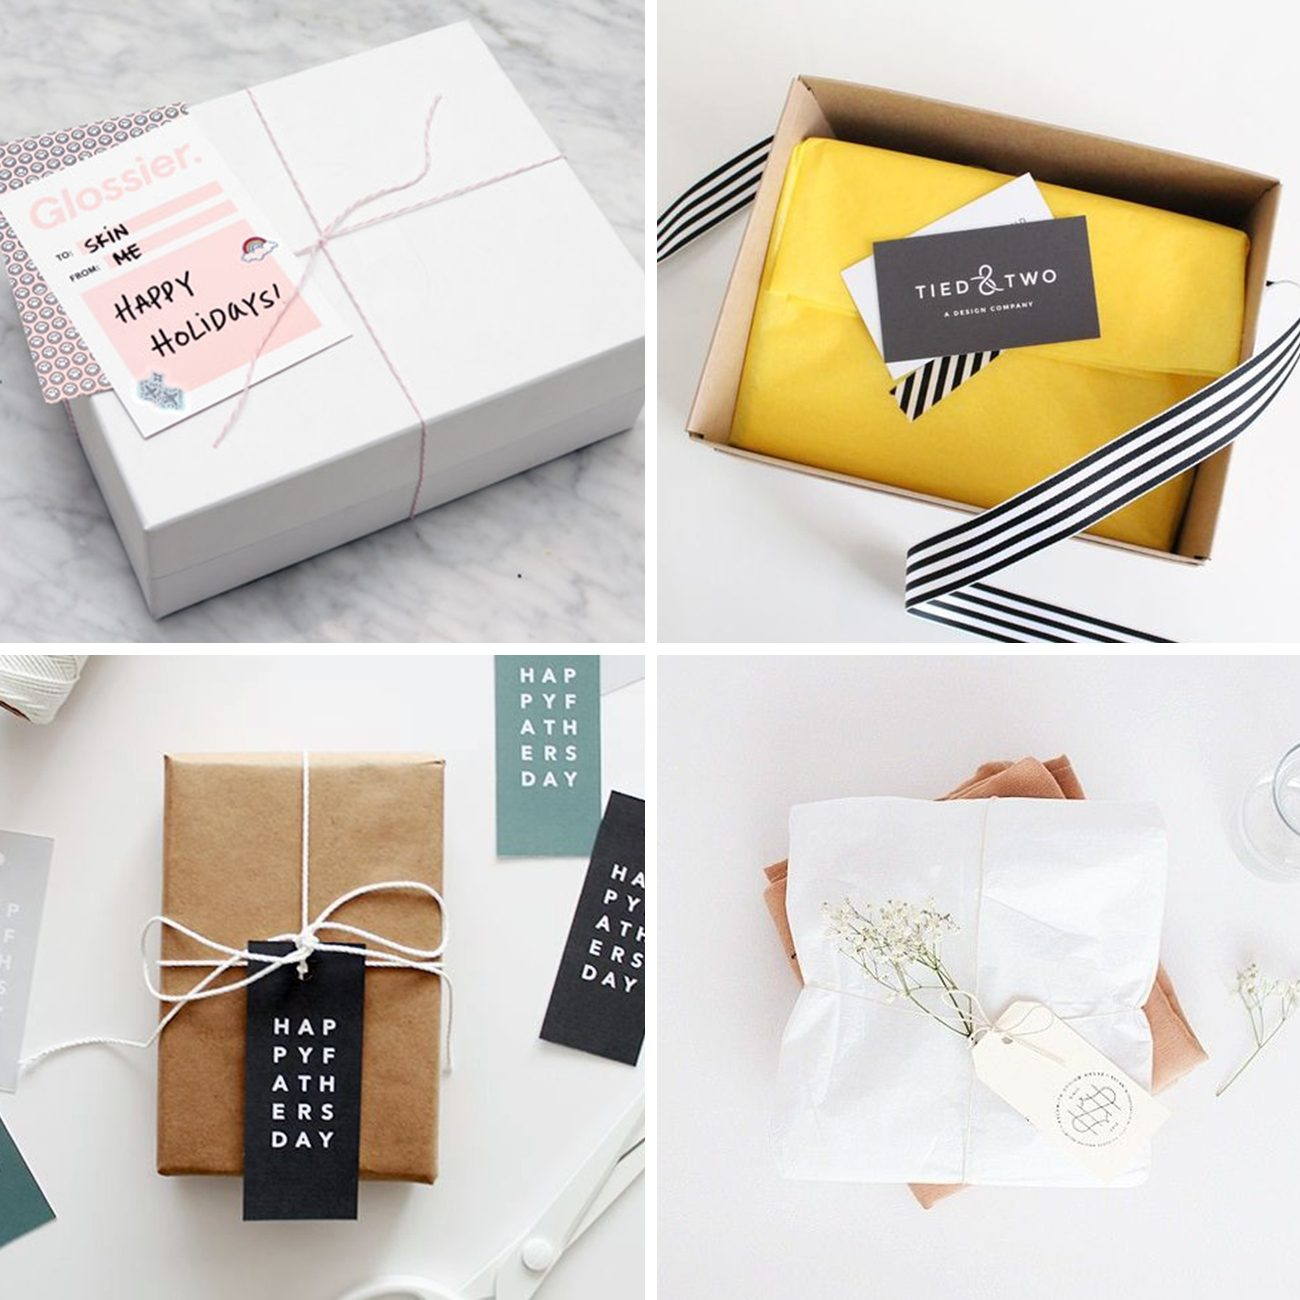 Photos via: —, Glossier, Tied & Two, Almost Makes Perfect, Oh So Pretty 70 Ideas to Spruce Up Your Holiday Packaging Design